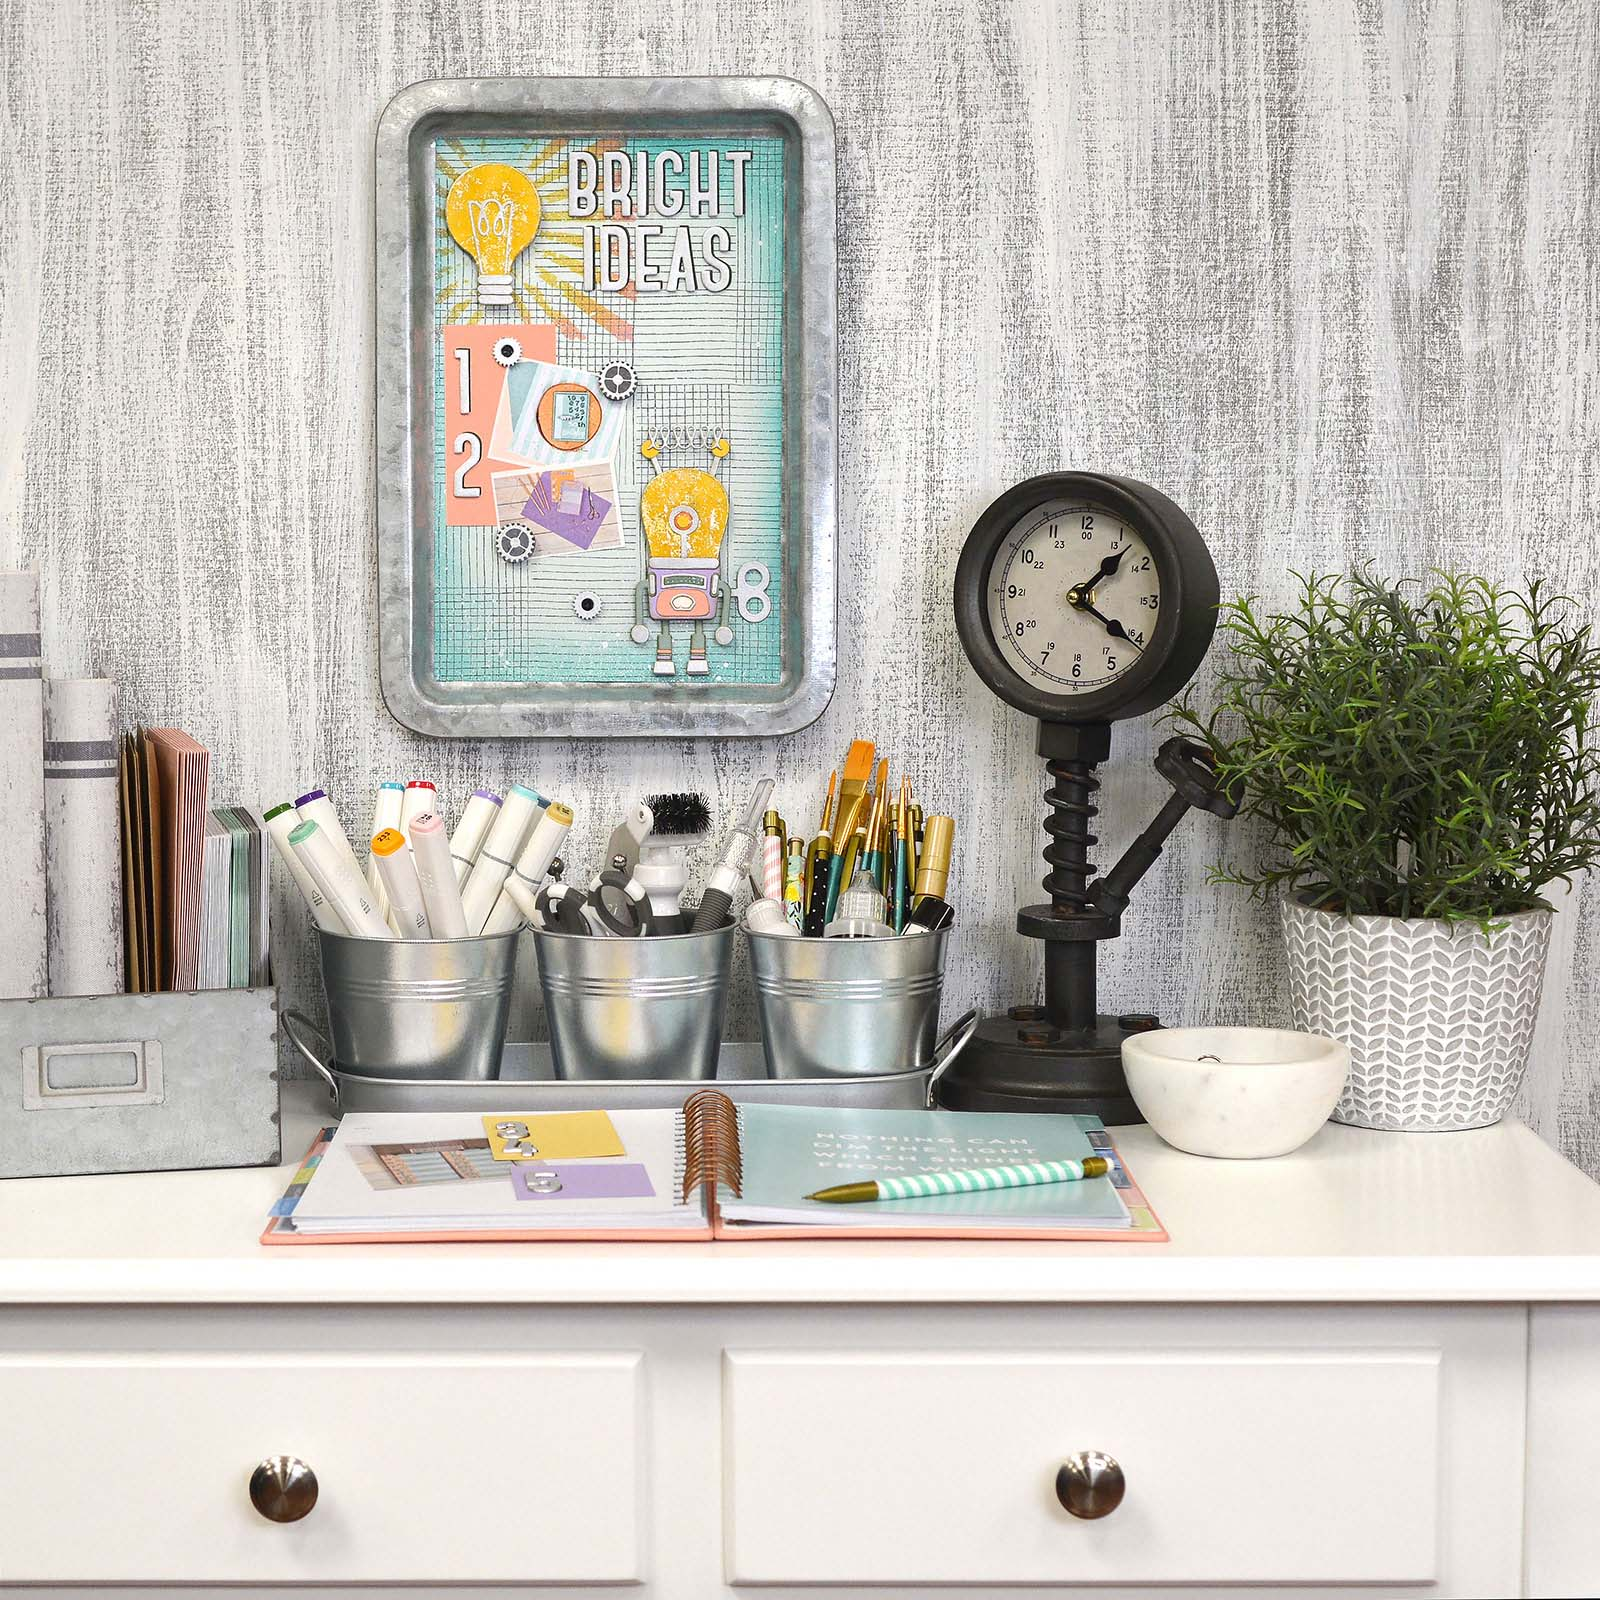 How to Make This Bright Ideas Memo Board